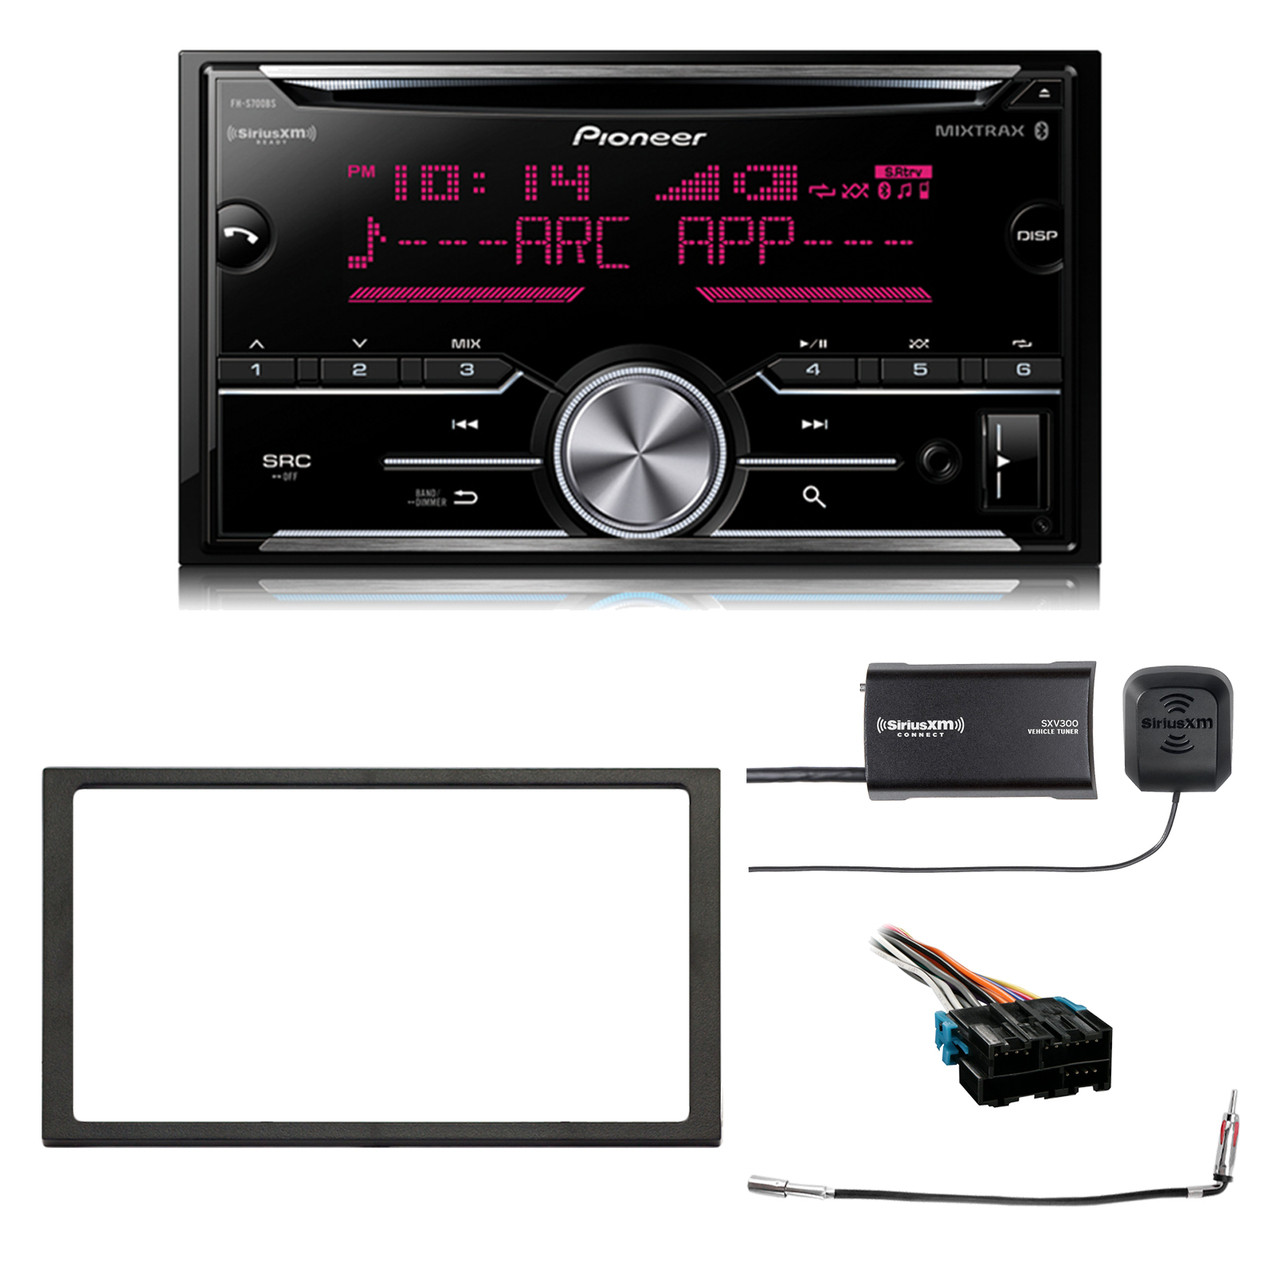 pioneer double din cd mixtrax bluetooth siriusxm ready receiver enrock 2 din install dash kit metra radio wiring harness antenna adapter  [ 1280 x 1280 Pixel ]